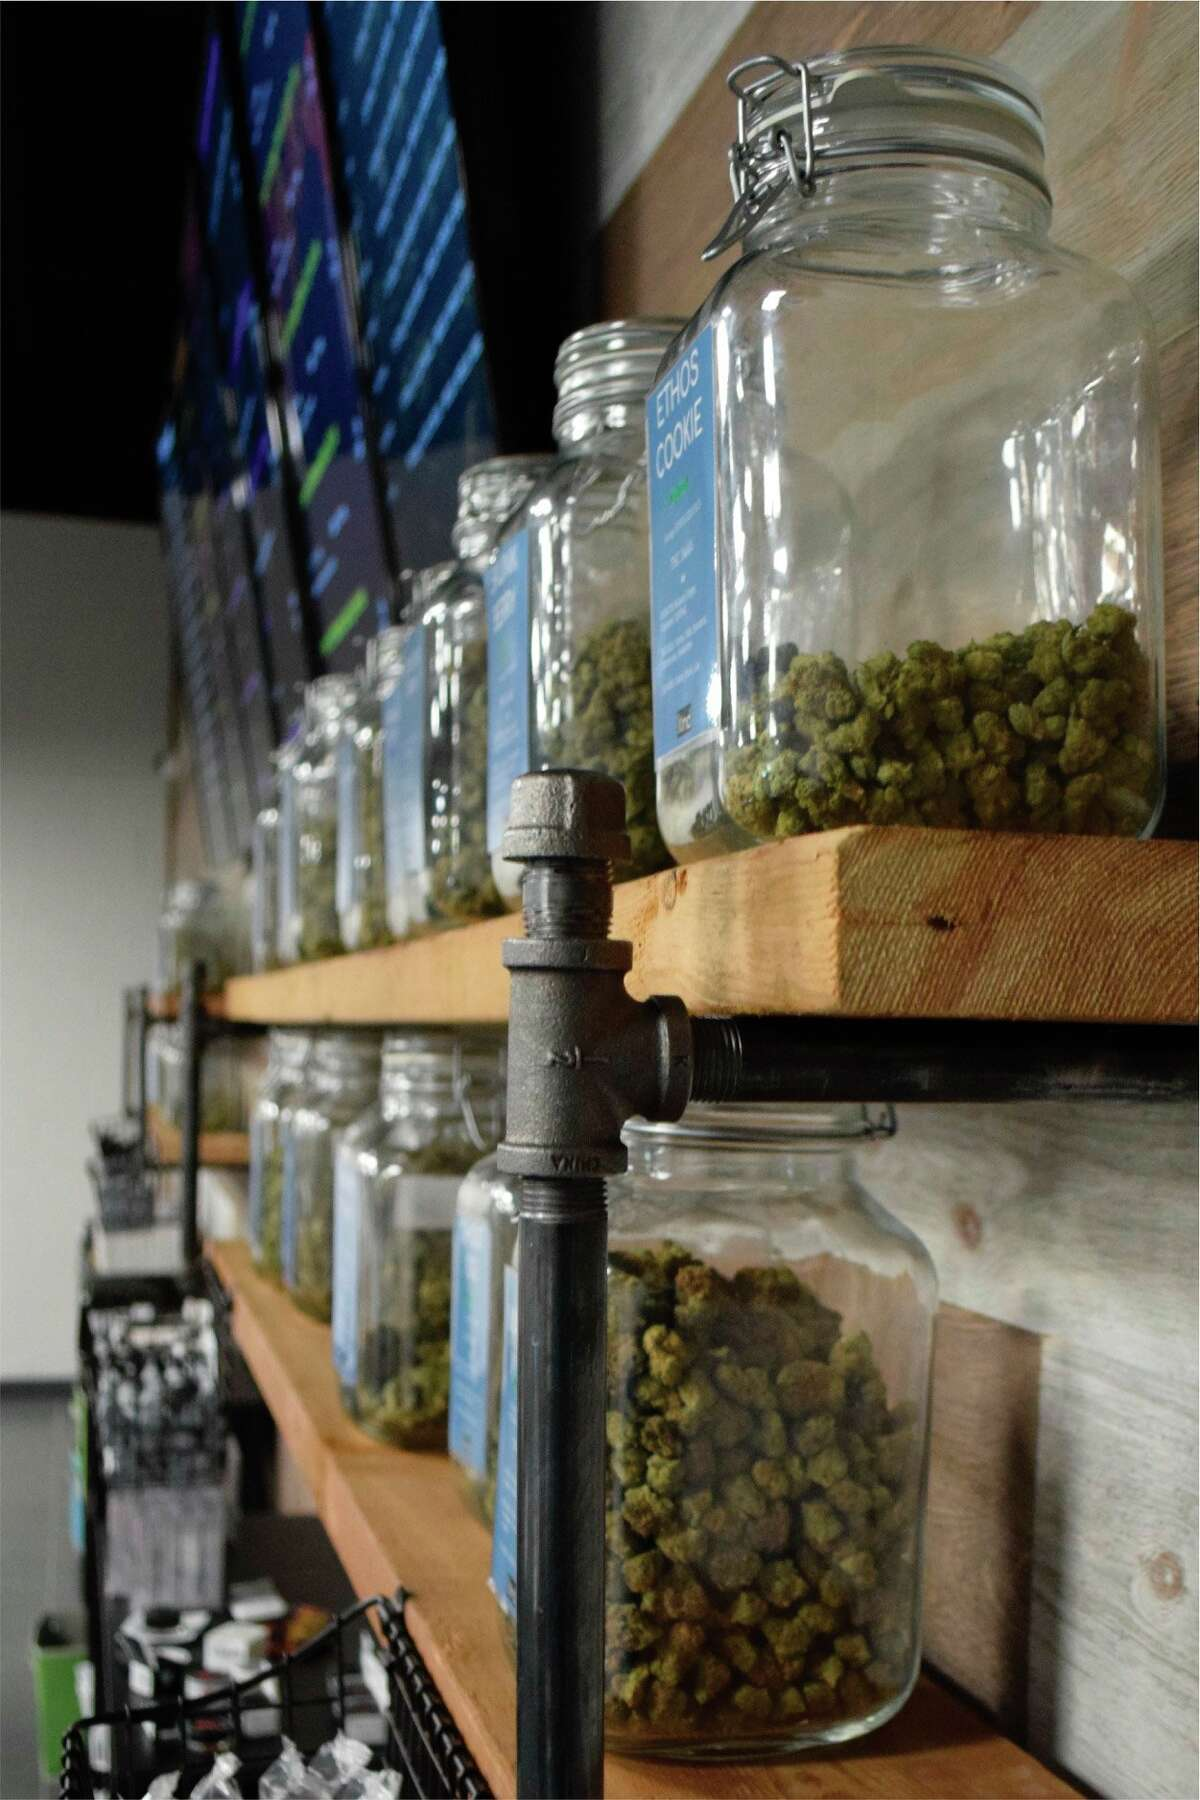 All the way from Kalamazoo, KKind-- a state licensed cannabis provisioning center-- opened its second recreational store in the city of Big Rapids.(Courtesy photo)